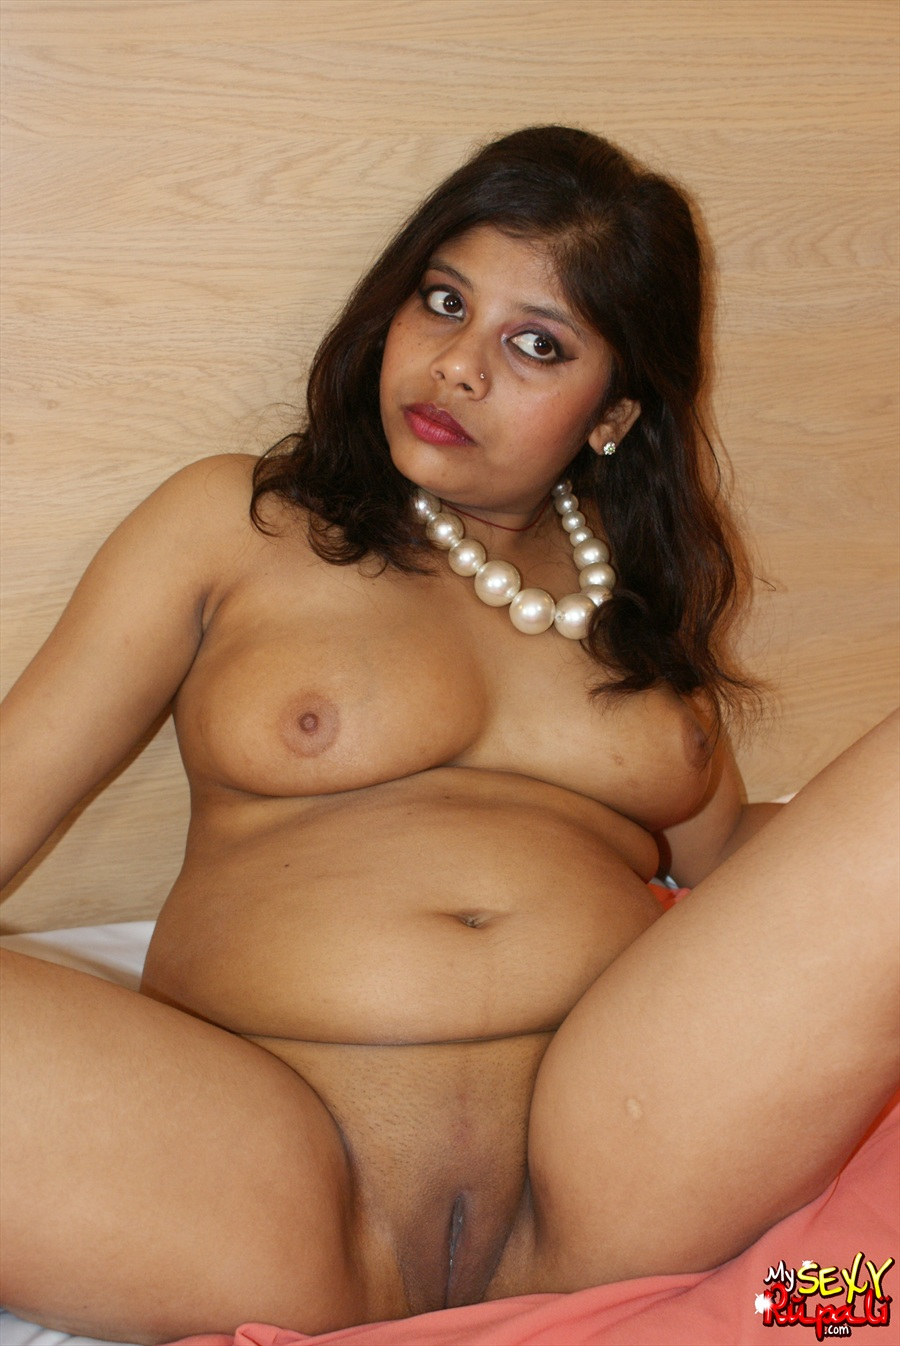 hd nude indian women